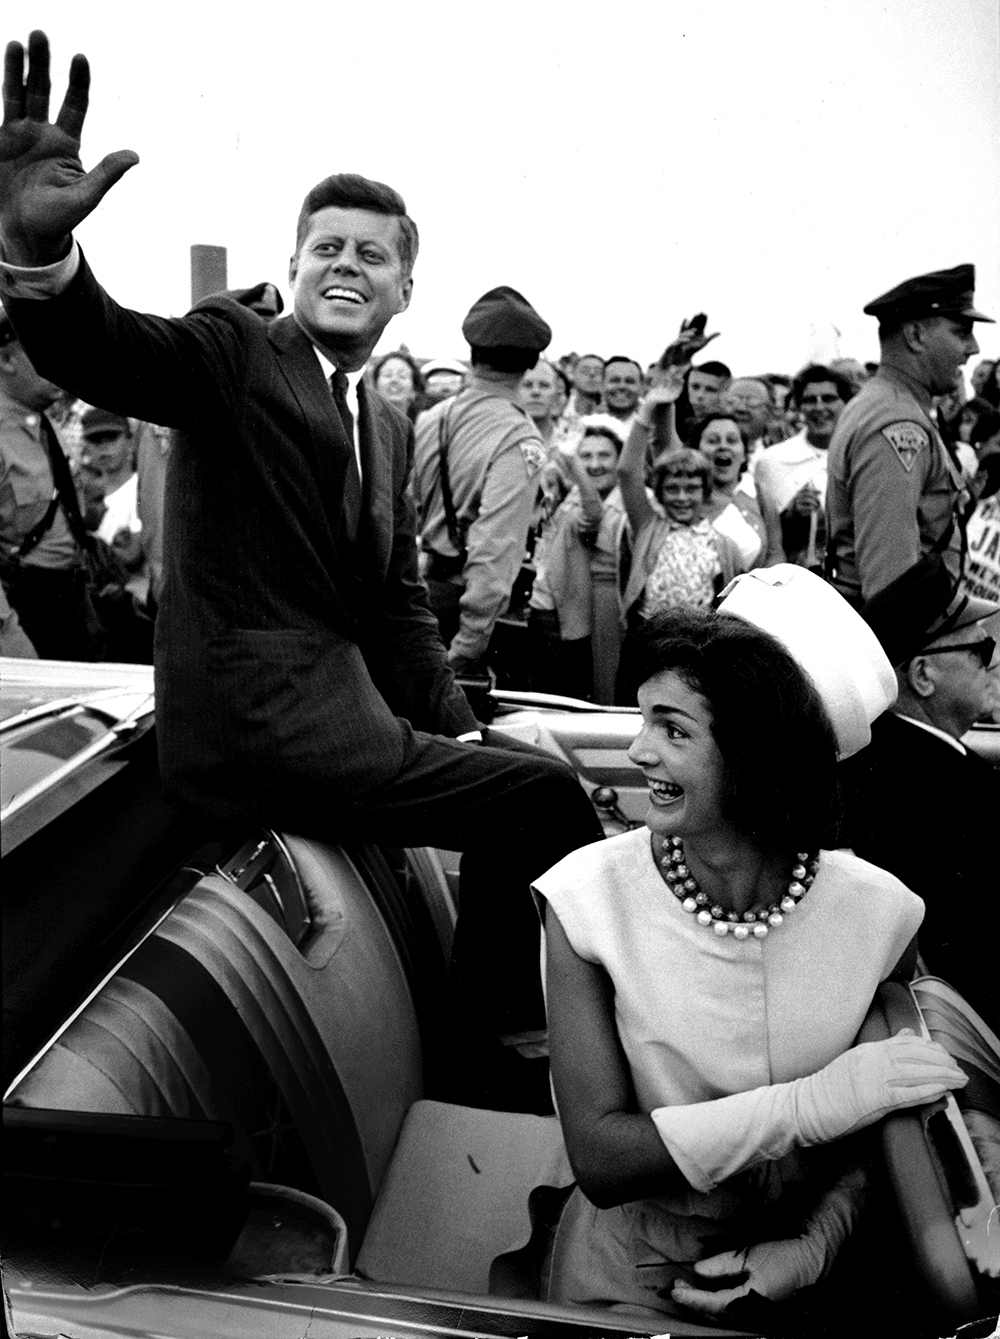 El senador Kennedy y su esposa regresan a Massachusetts tras la nominación de 1960 para presentarse a las elecciones. Photo © Paul Schutzer, Getty Images